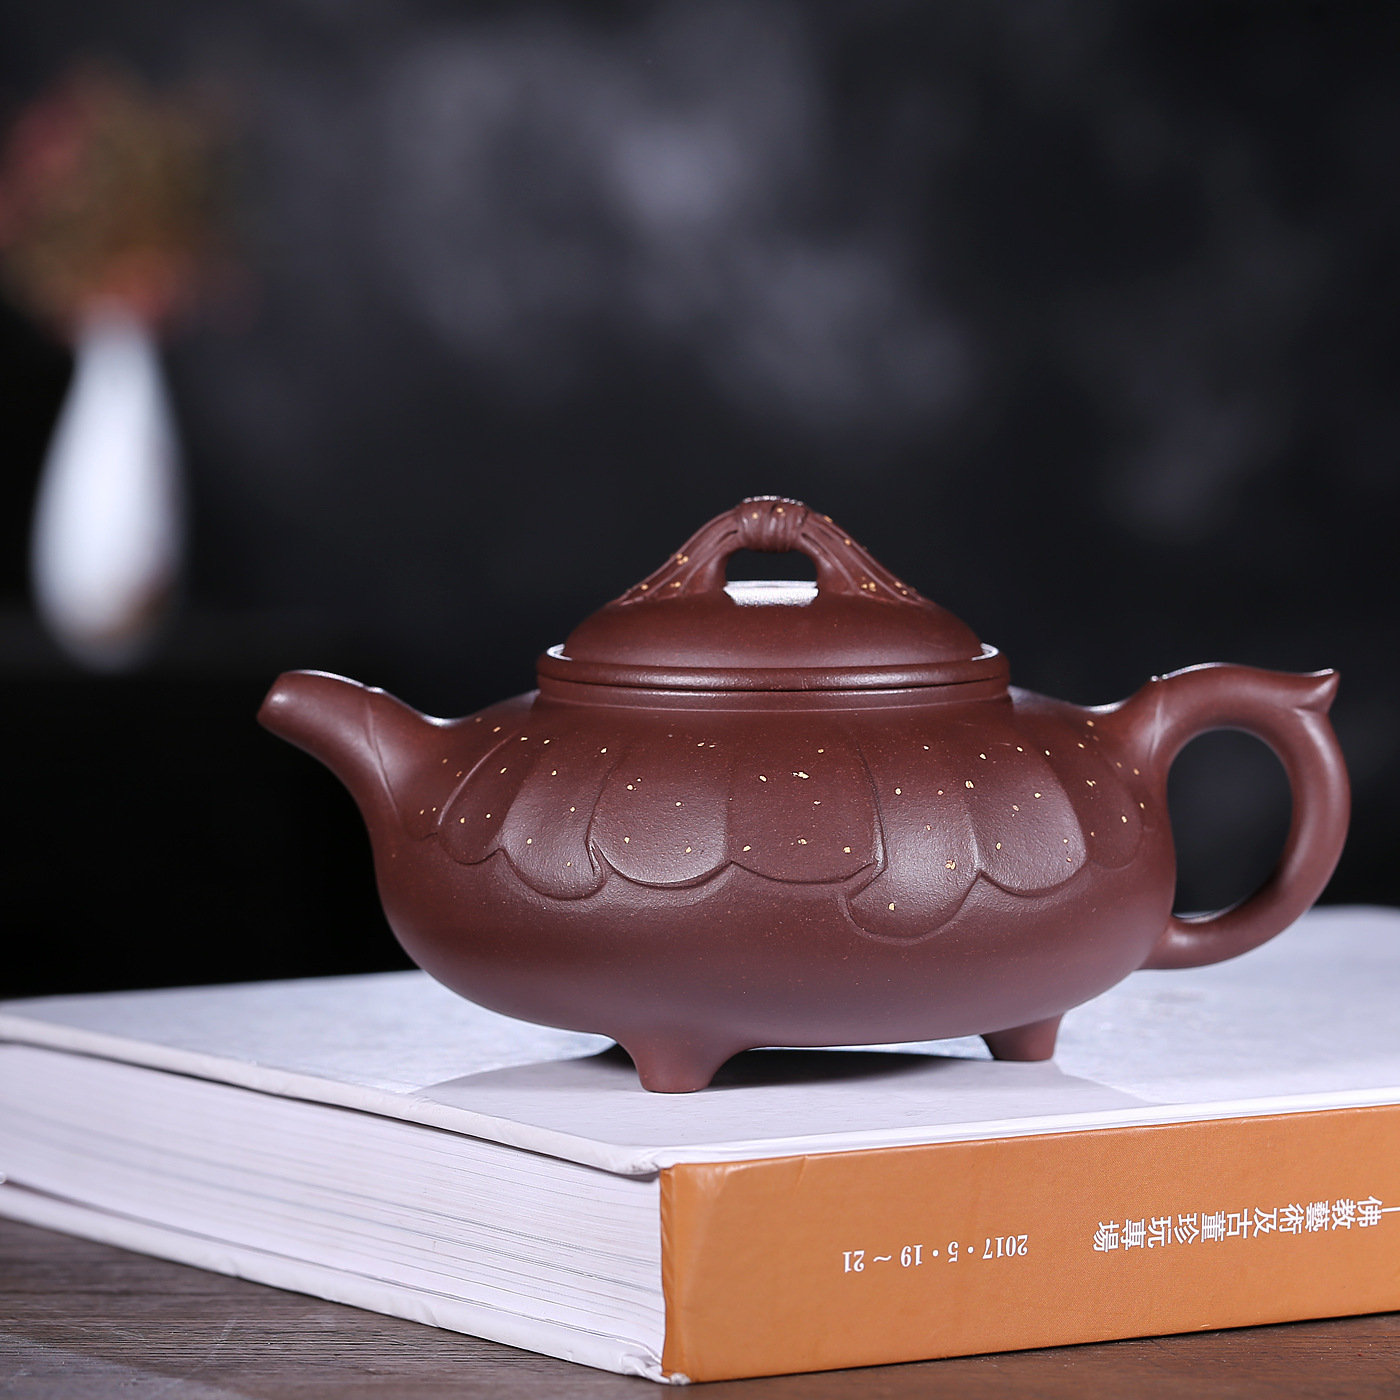 Yixing Enameled Pottery Teapot Full Manual Neon Kale Pot Purple Mud Famous Shao Li Ping Kungfu Online Teapot Tea Set WholesaleYixing Enameled Pottery Teapot Full Manual Neon Kale Pot Purple Mud Famous Shao Li Ping Kungfu Online Teapot Tea Set Wholesale